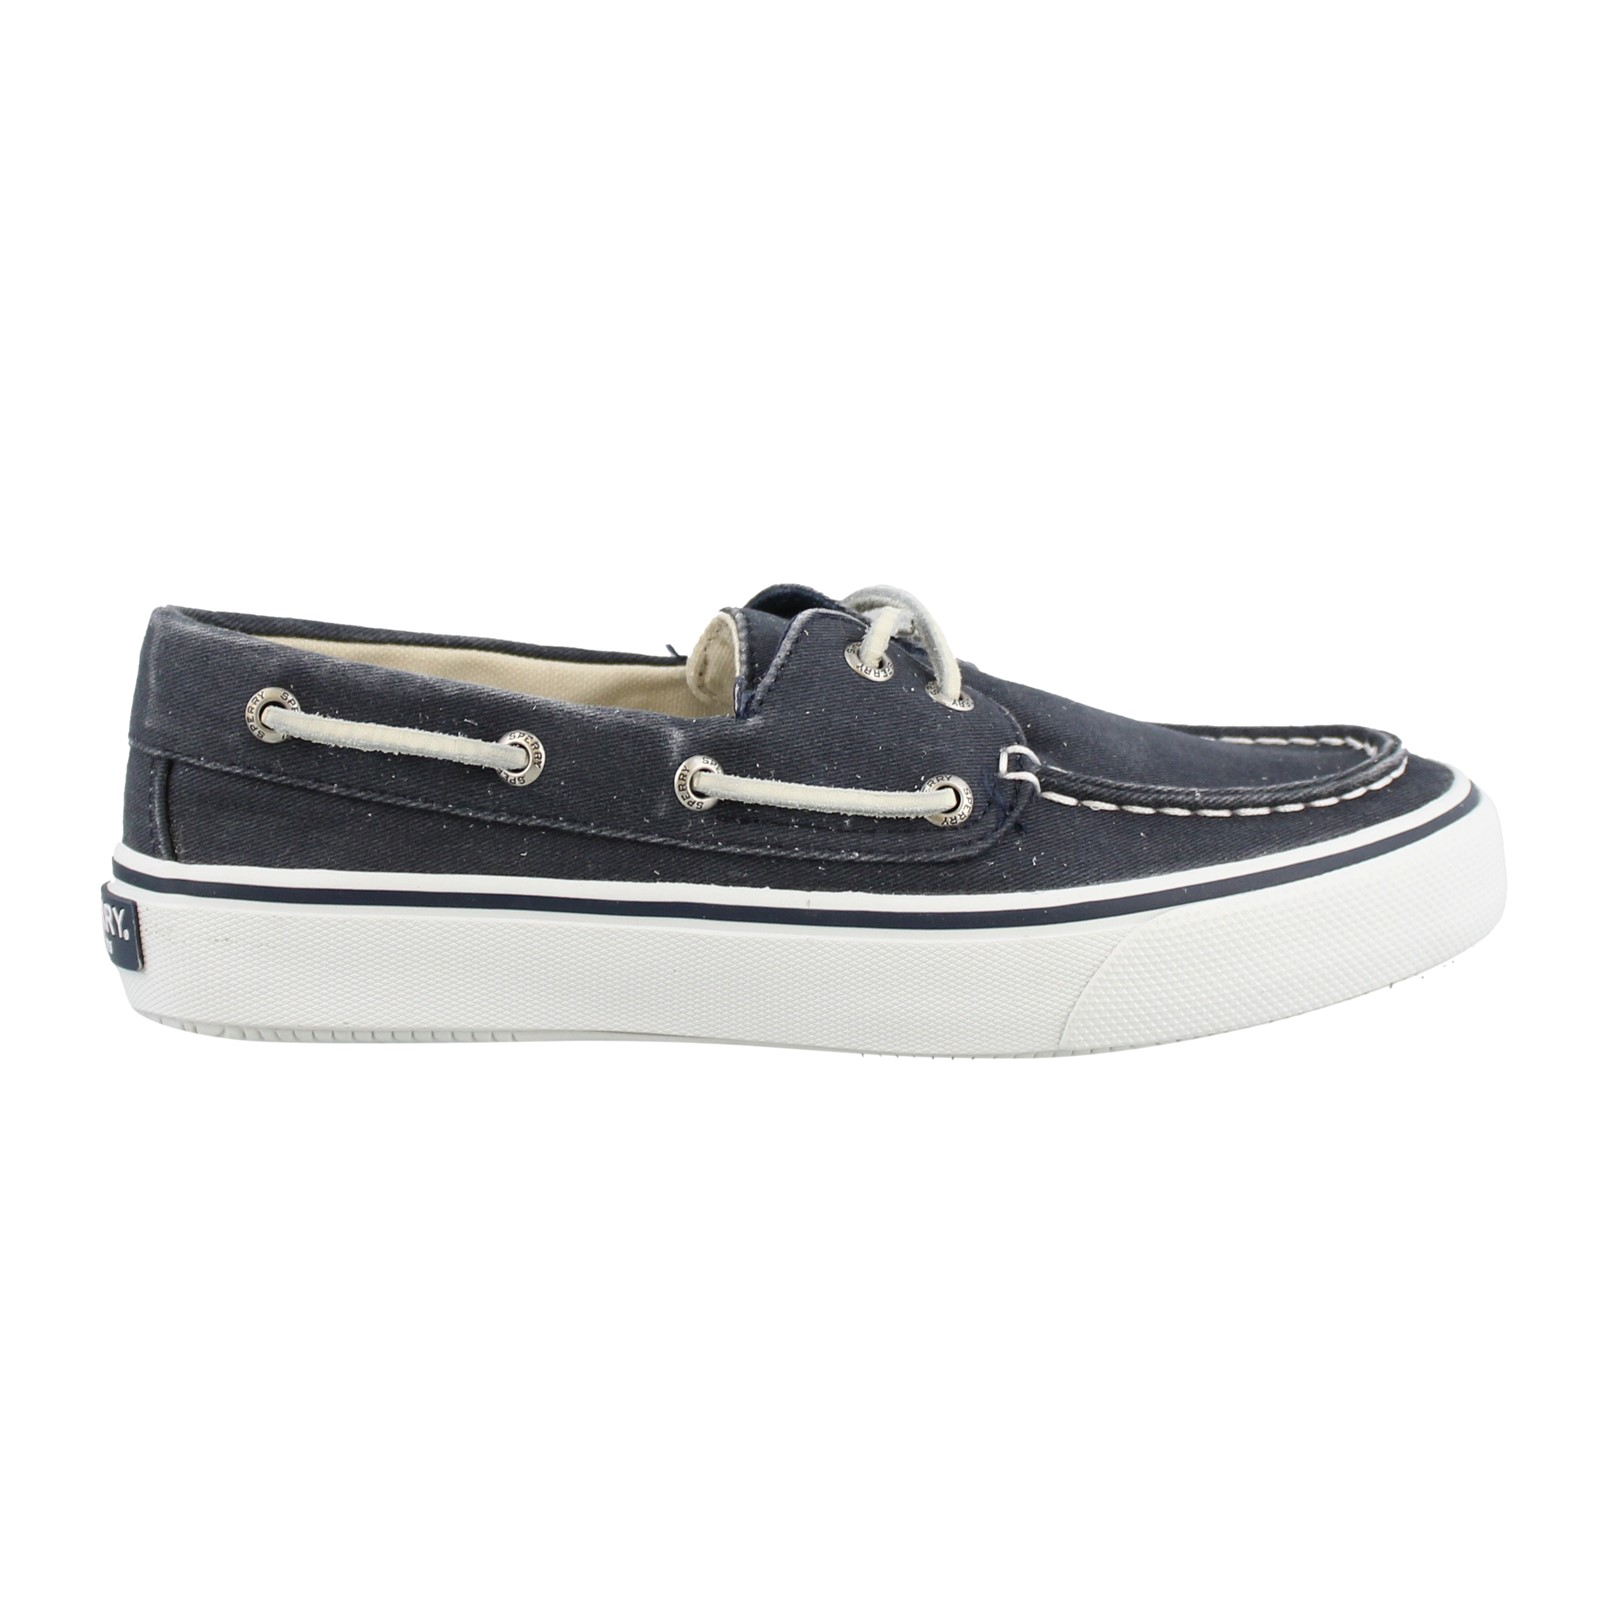 Men's Sperry Top Sider, Bahama 2 Eye Boat Shoe